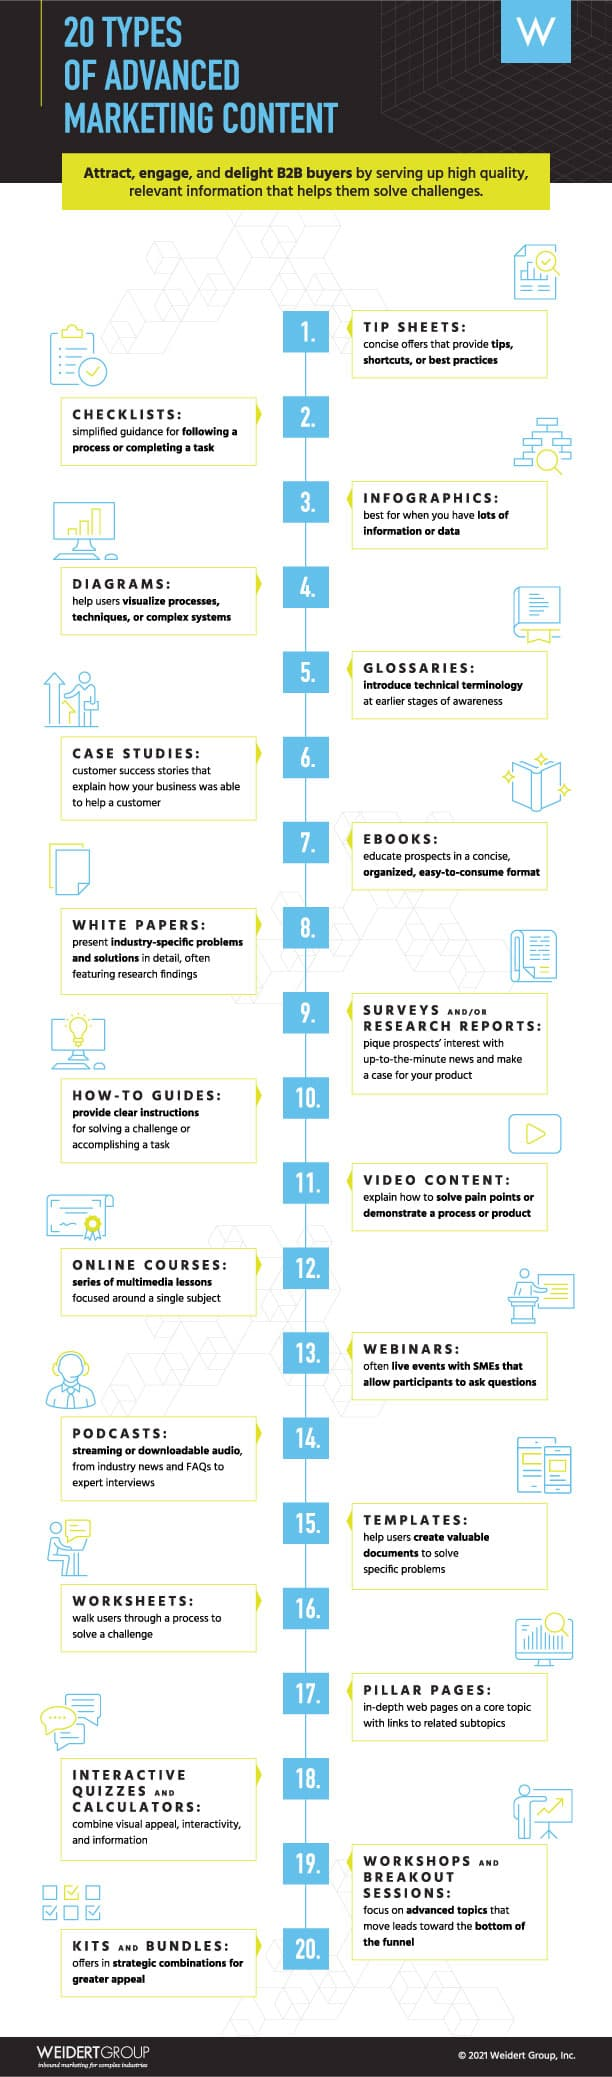 Types of Advanced Content Infographic